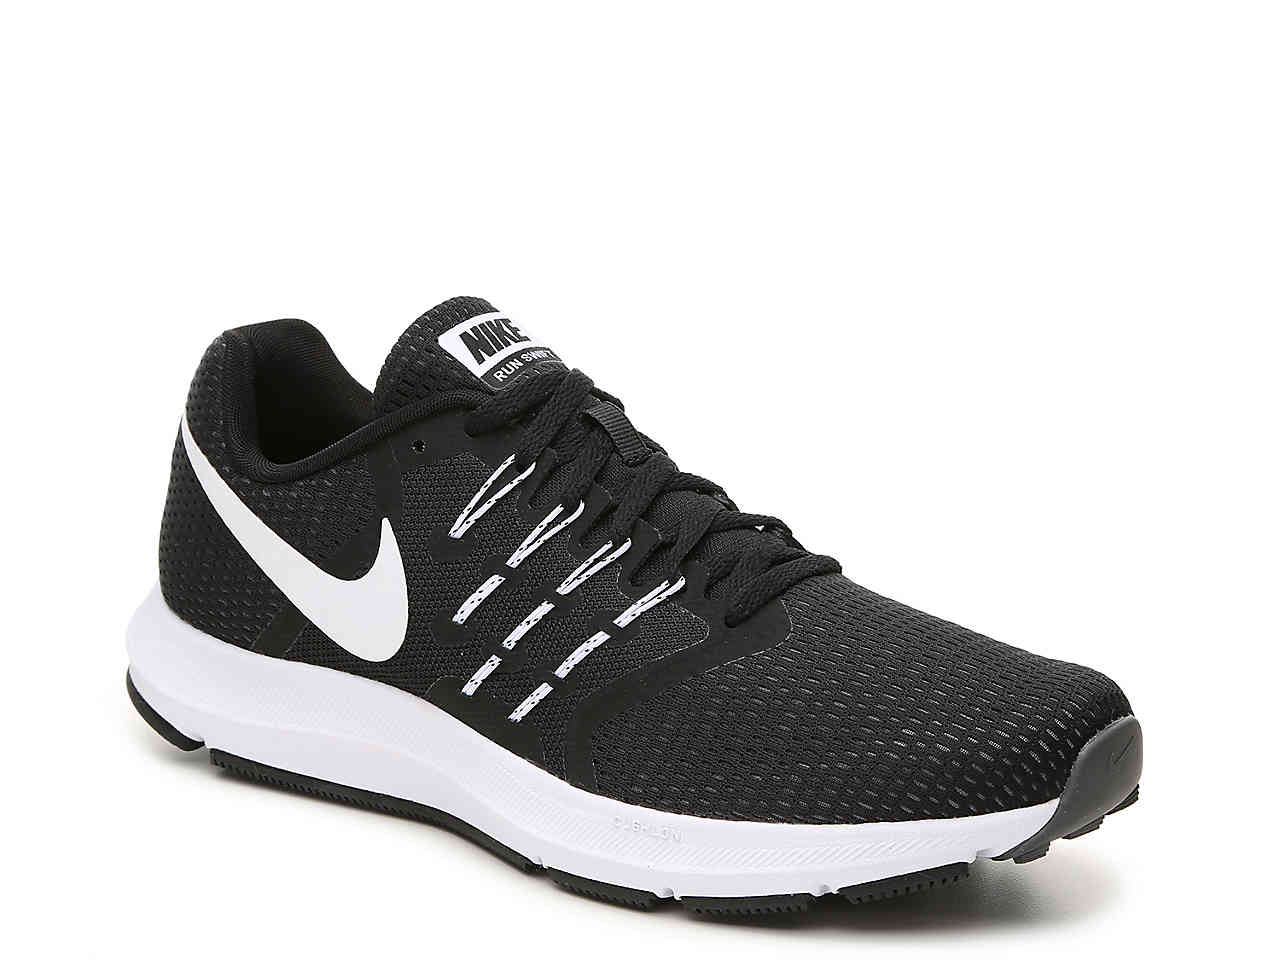 Black Running Shoes – Choose the Most Comfortable One!